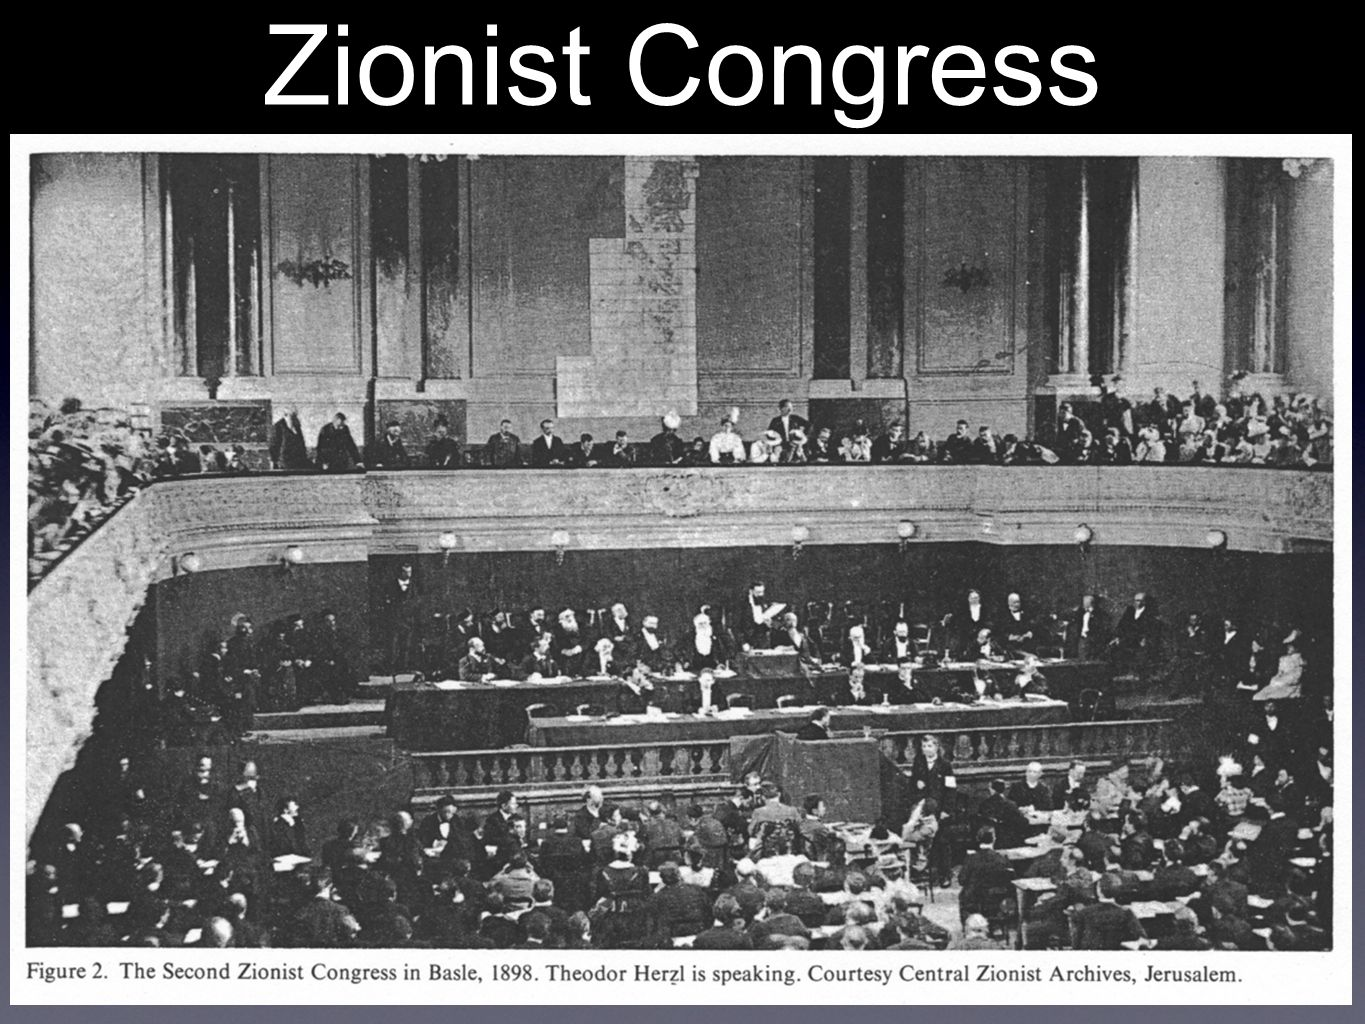 Zionist Congress